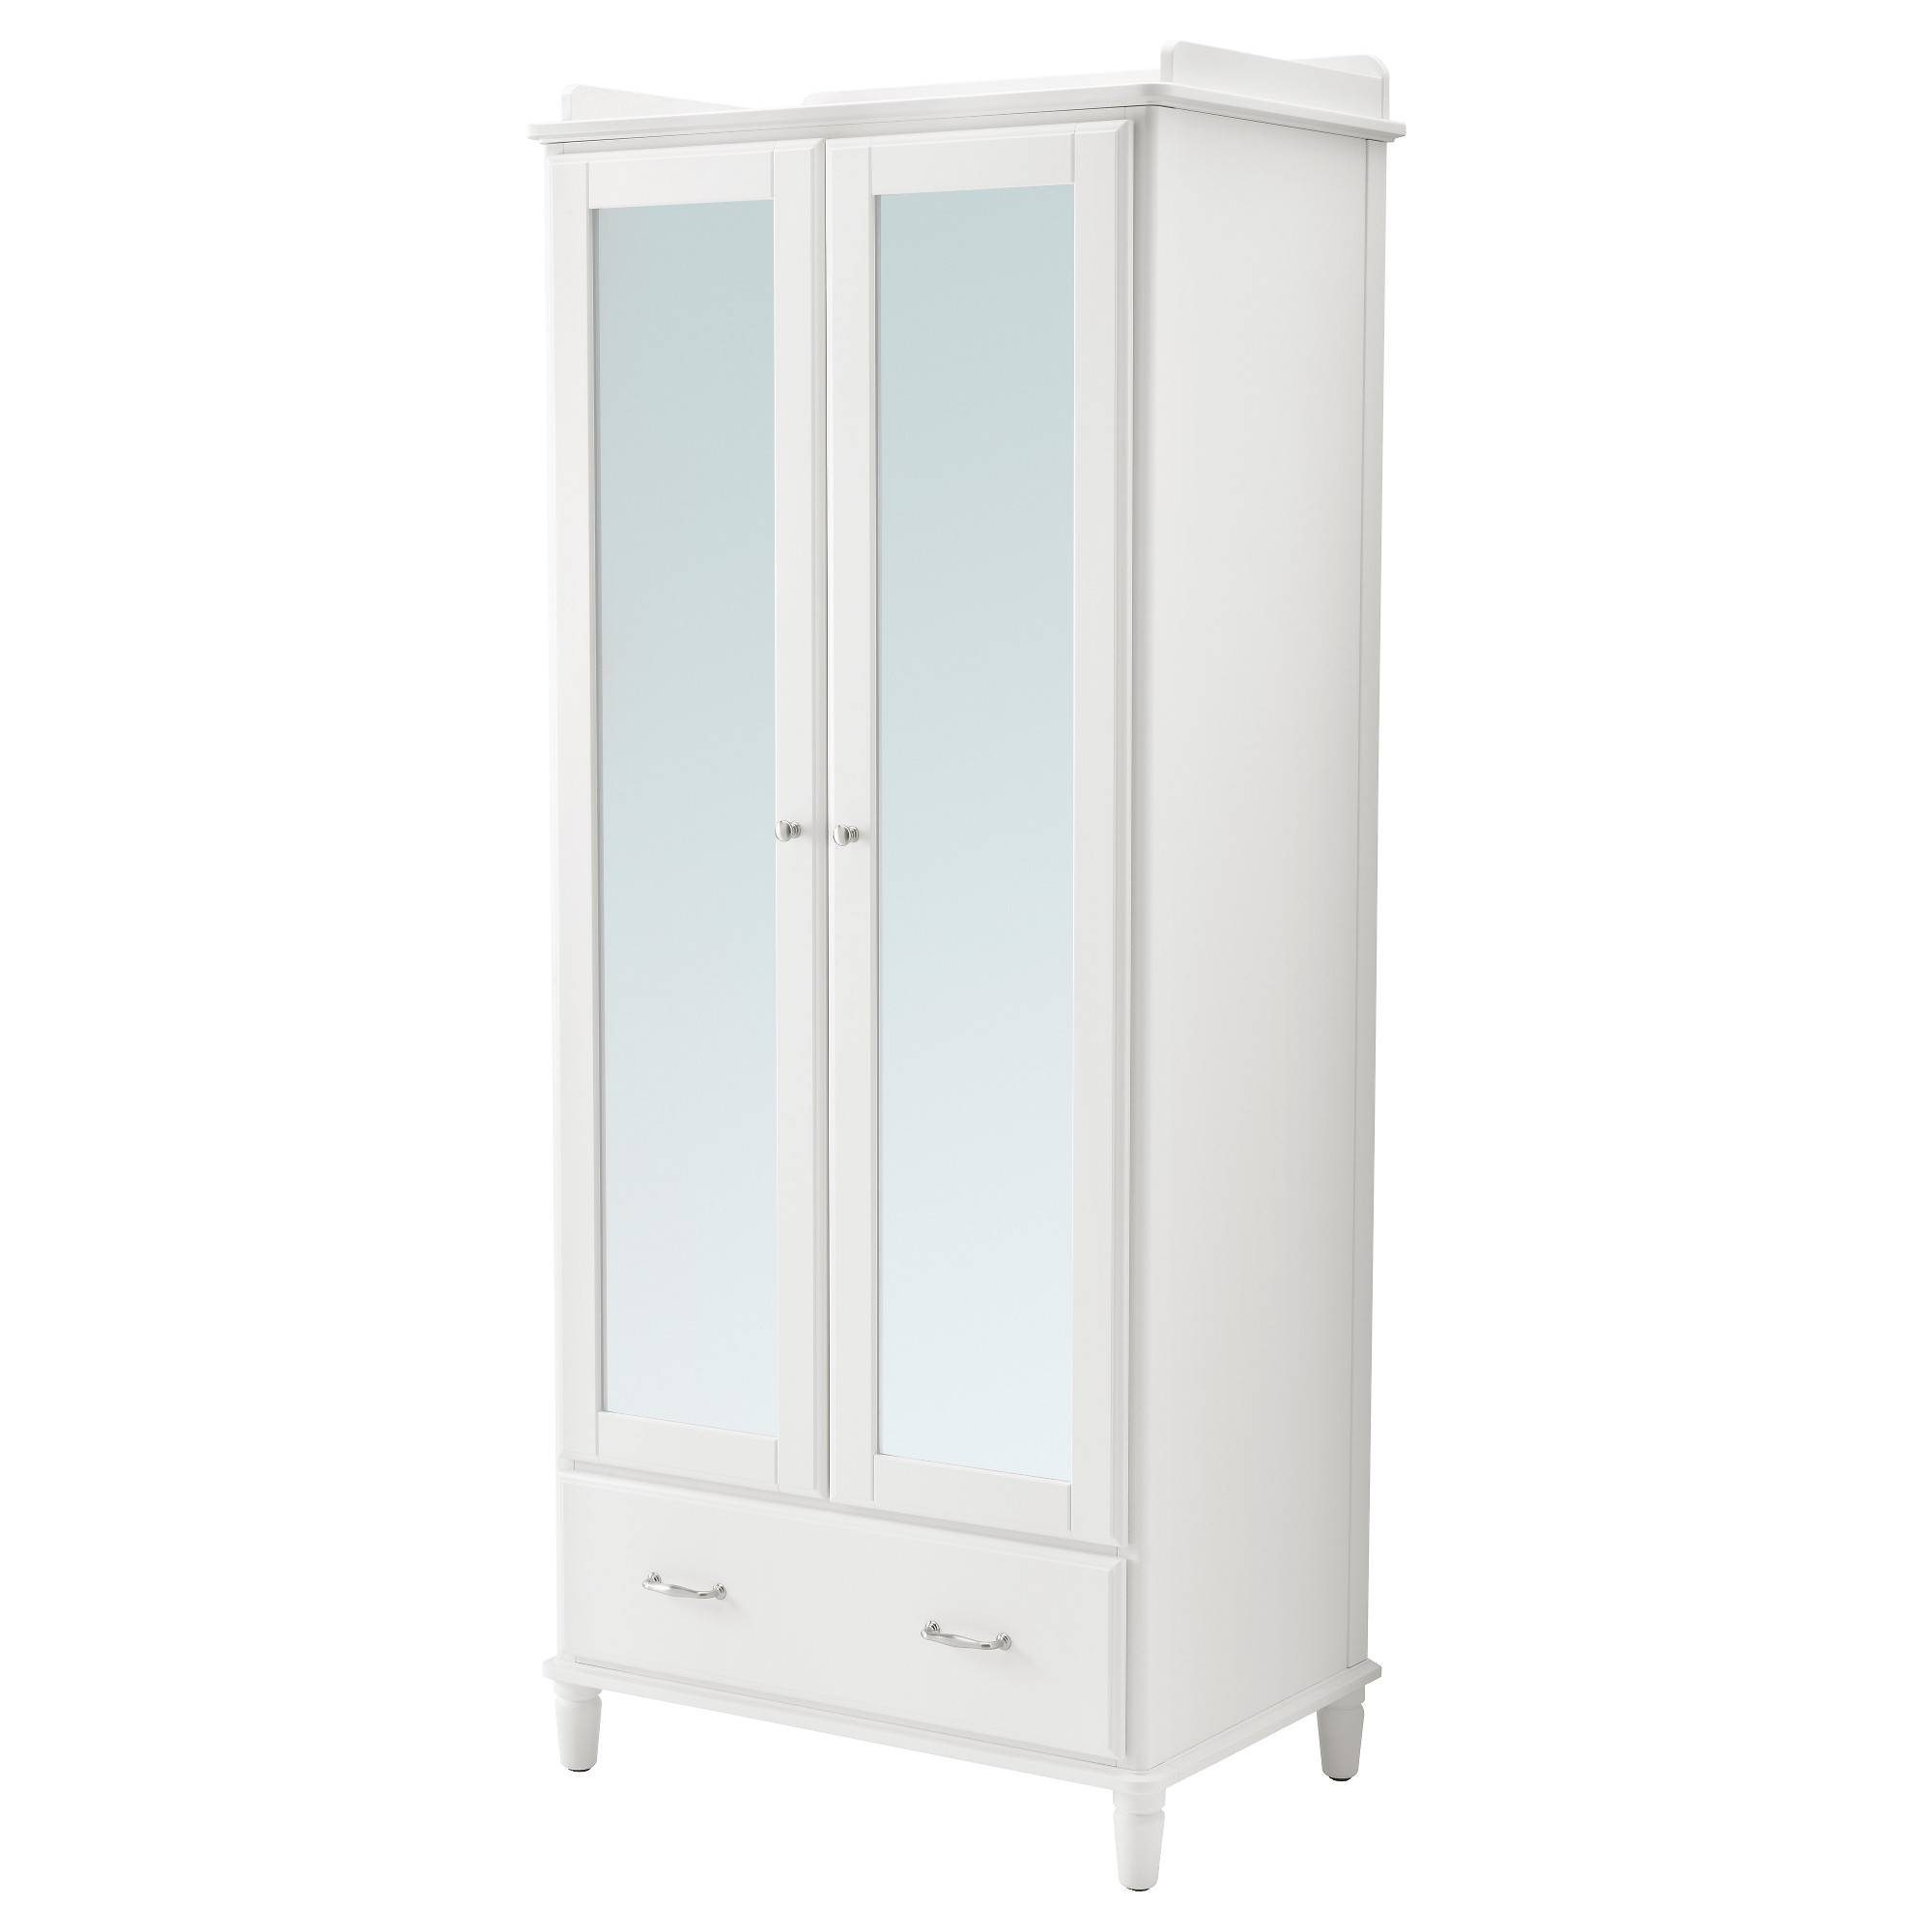 Wardrobes | Ikea Inside Wardrobes With Mirror And Drawers (View 14 of 15)